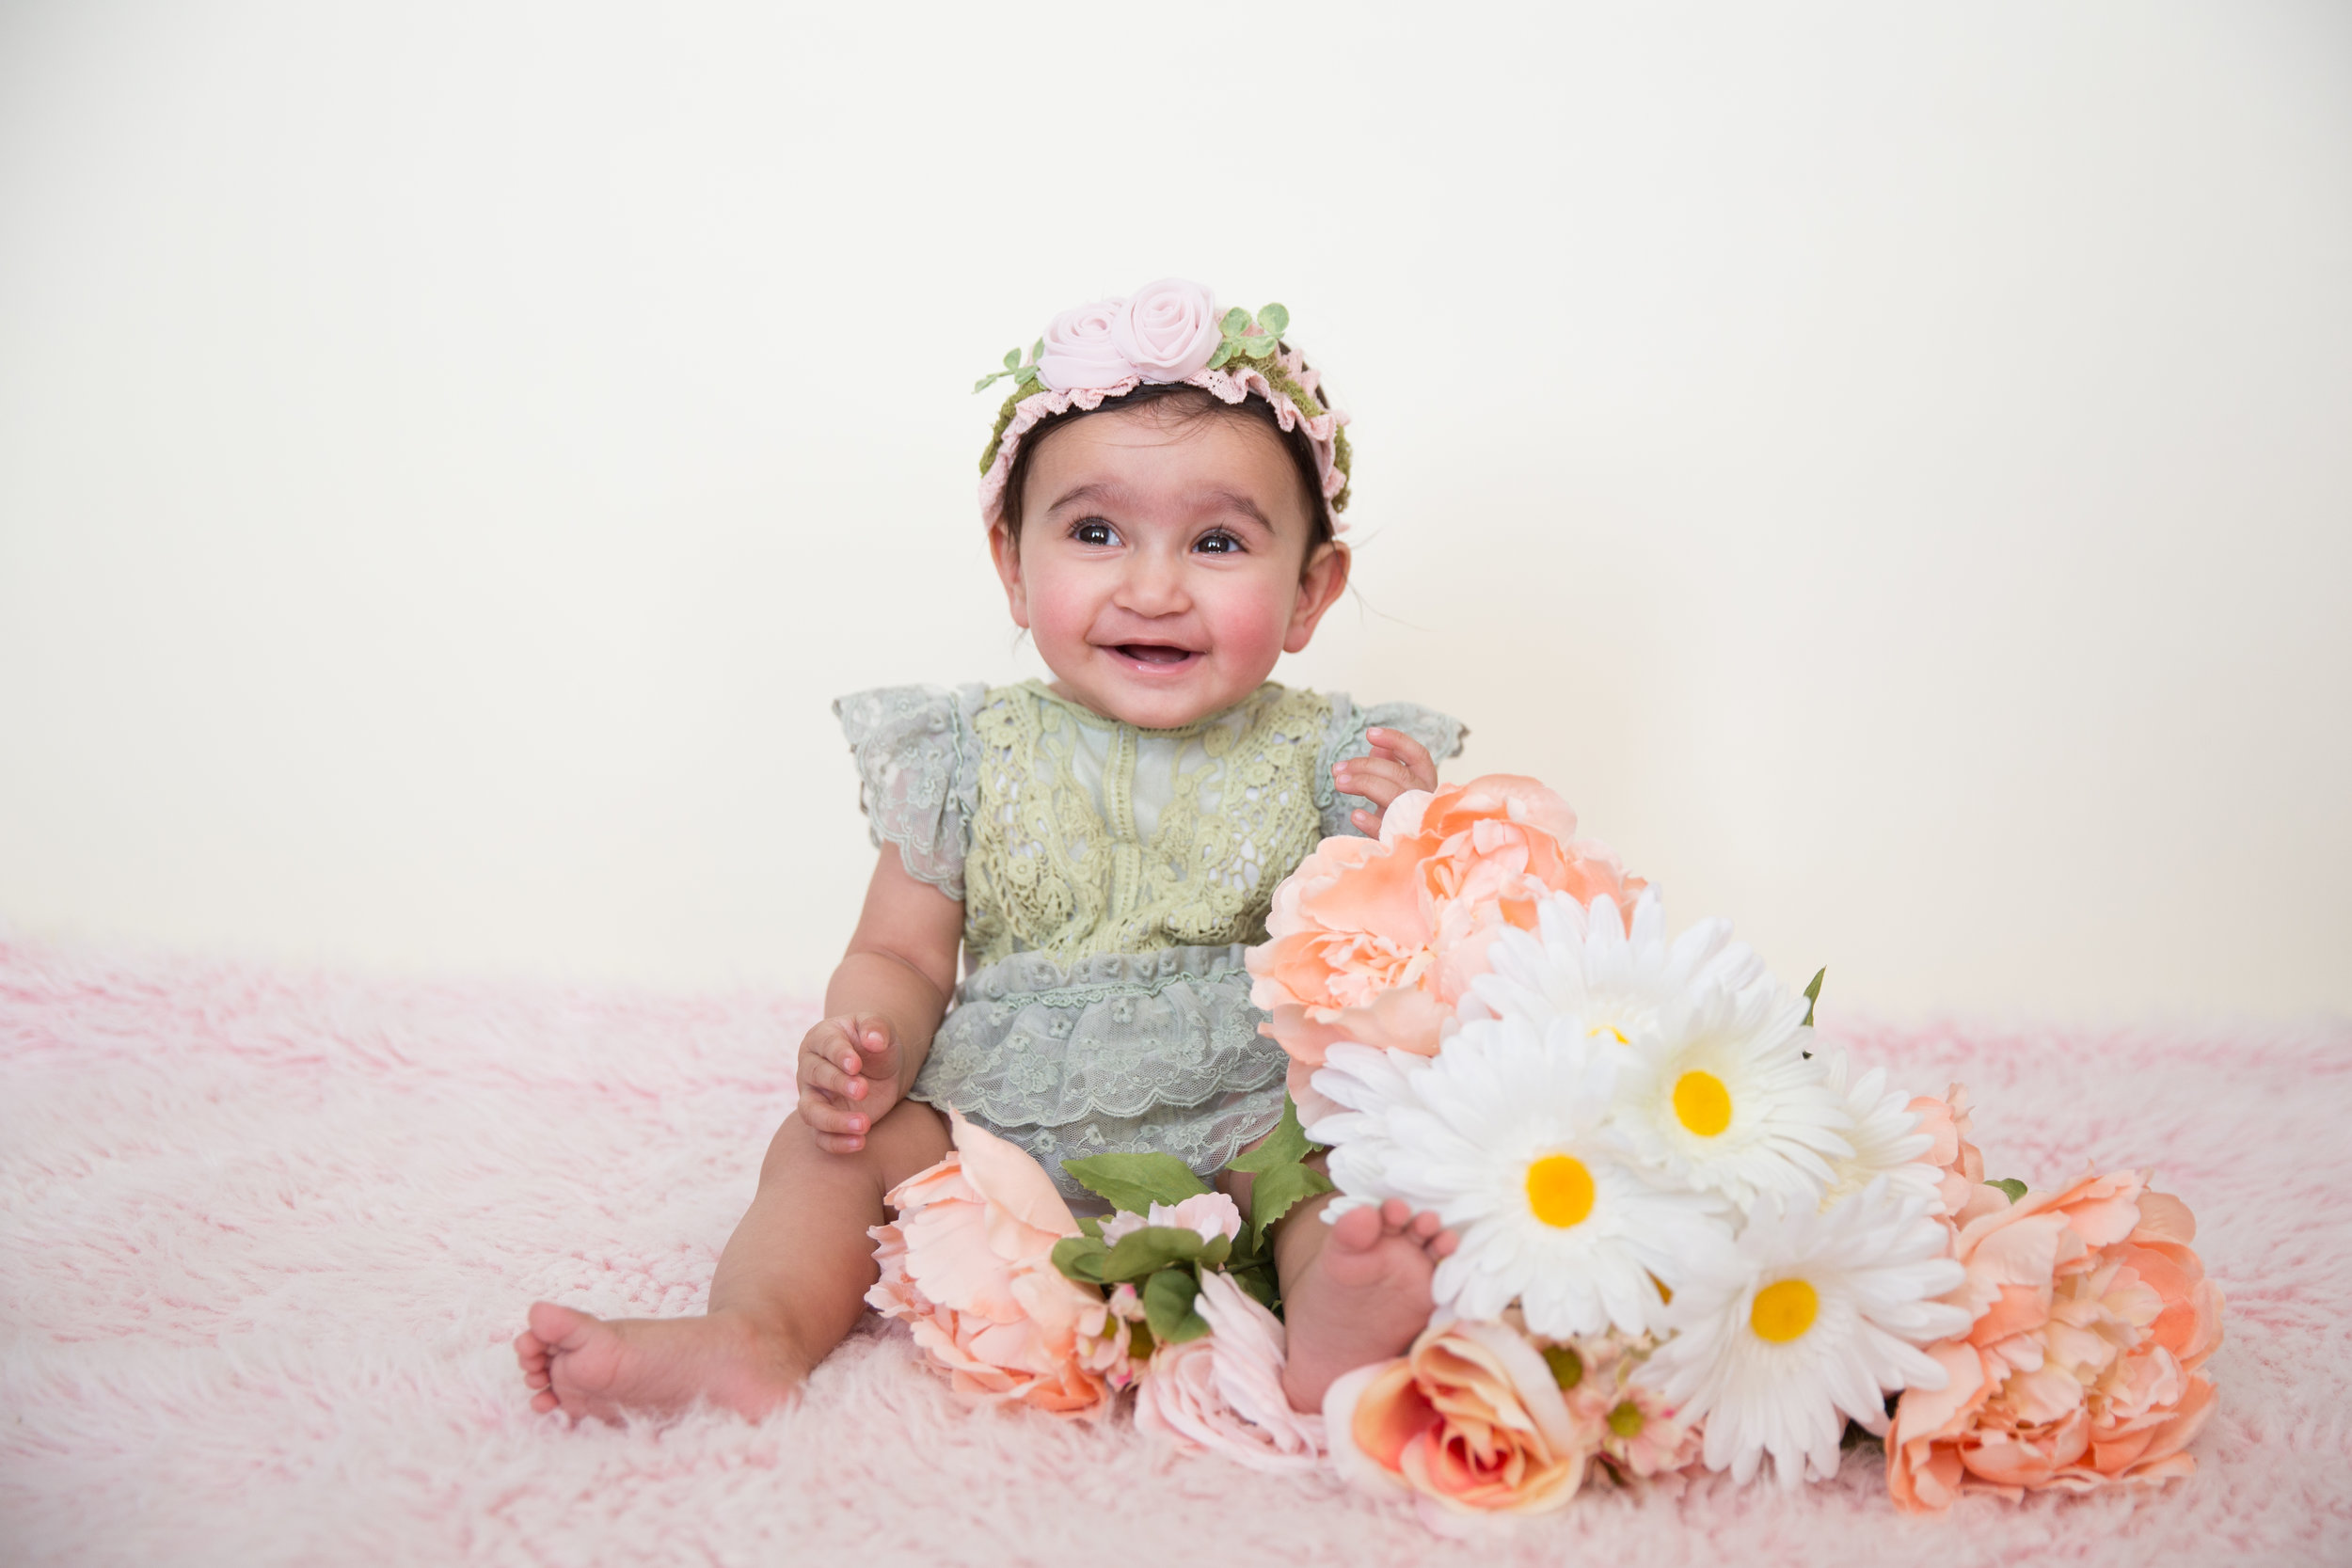 Baby girl in a cute spring outfit with flowers. Photoshoot idea. Calgary baby milestone photographer